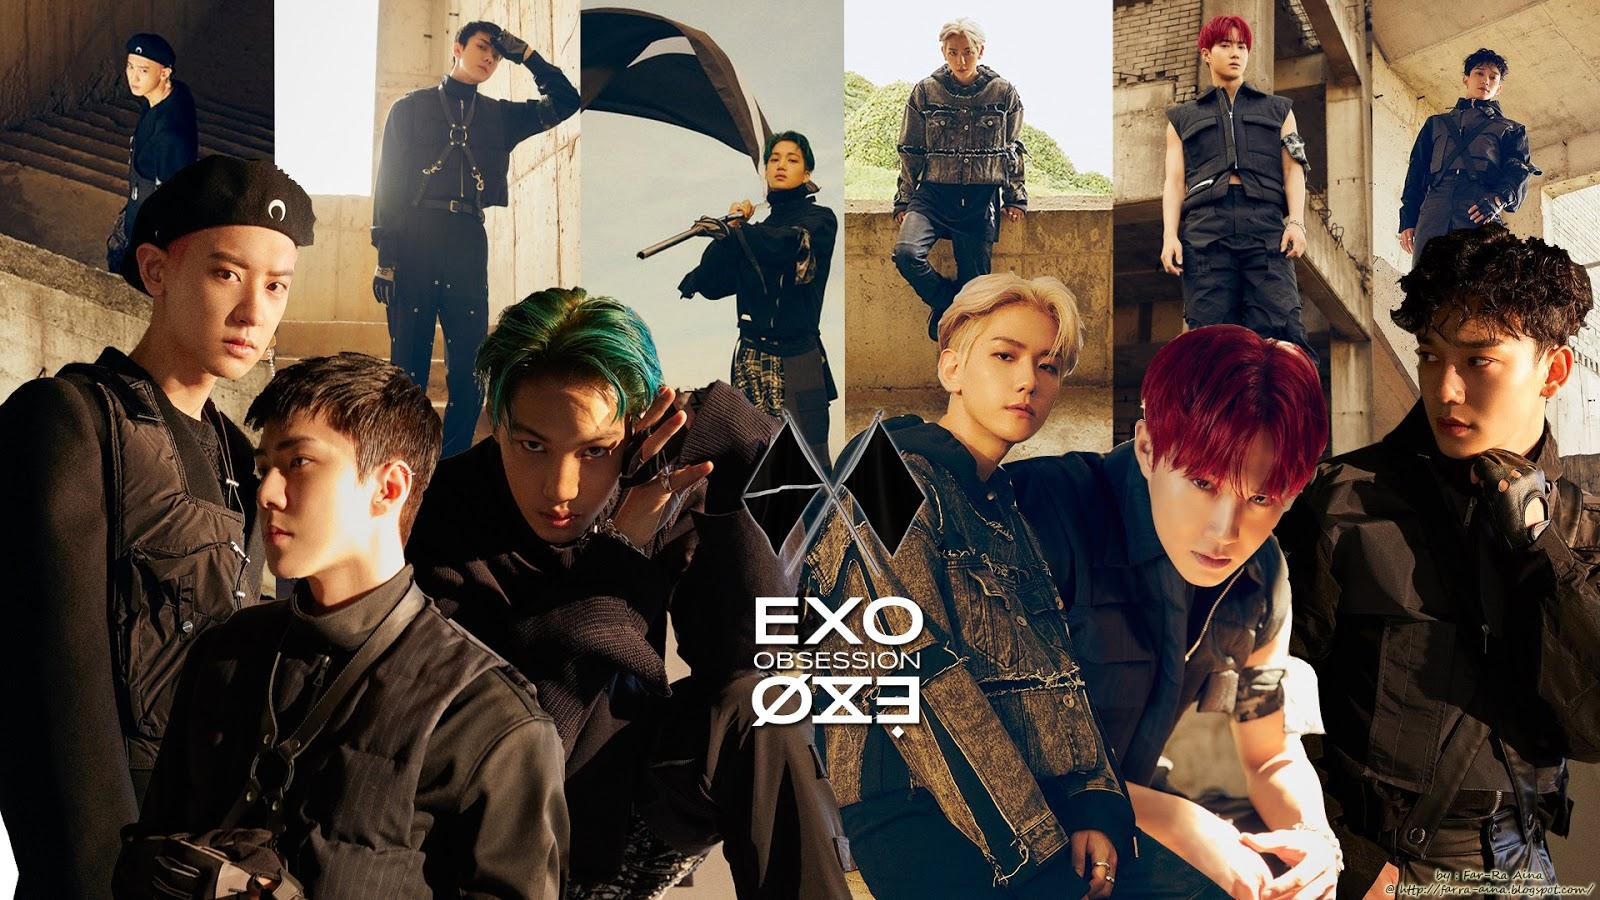 EXO OBSESSION Wallpapers - Wallpaper Cave